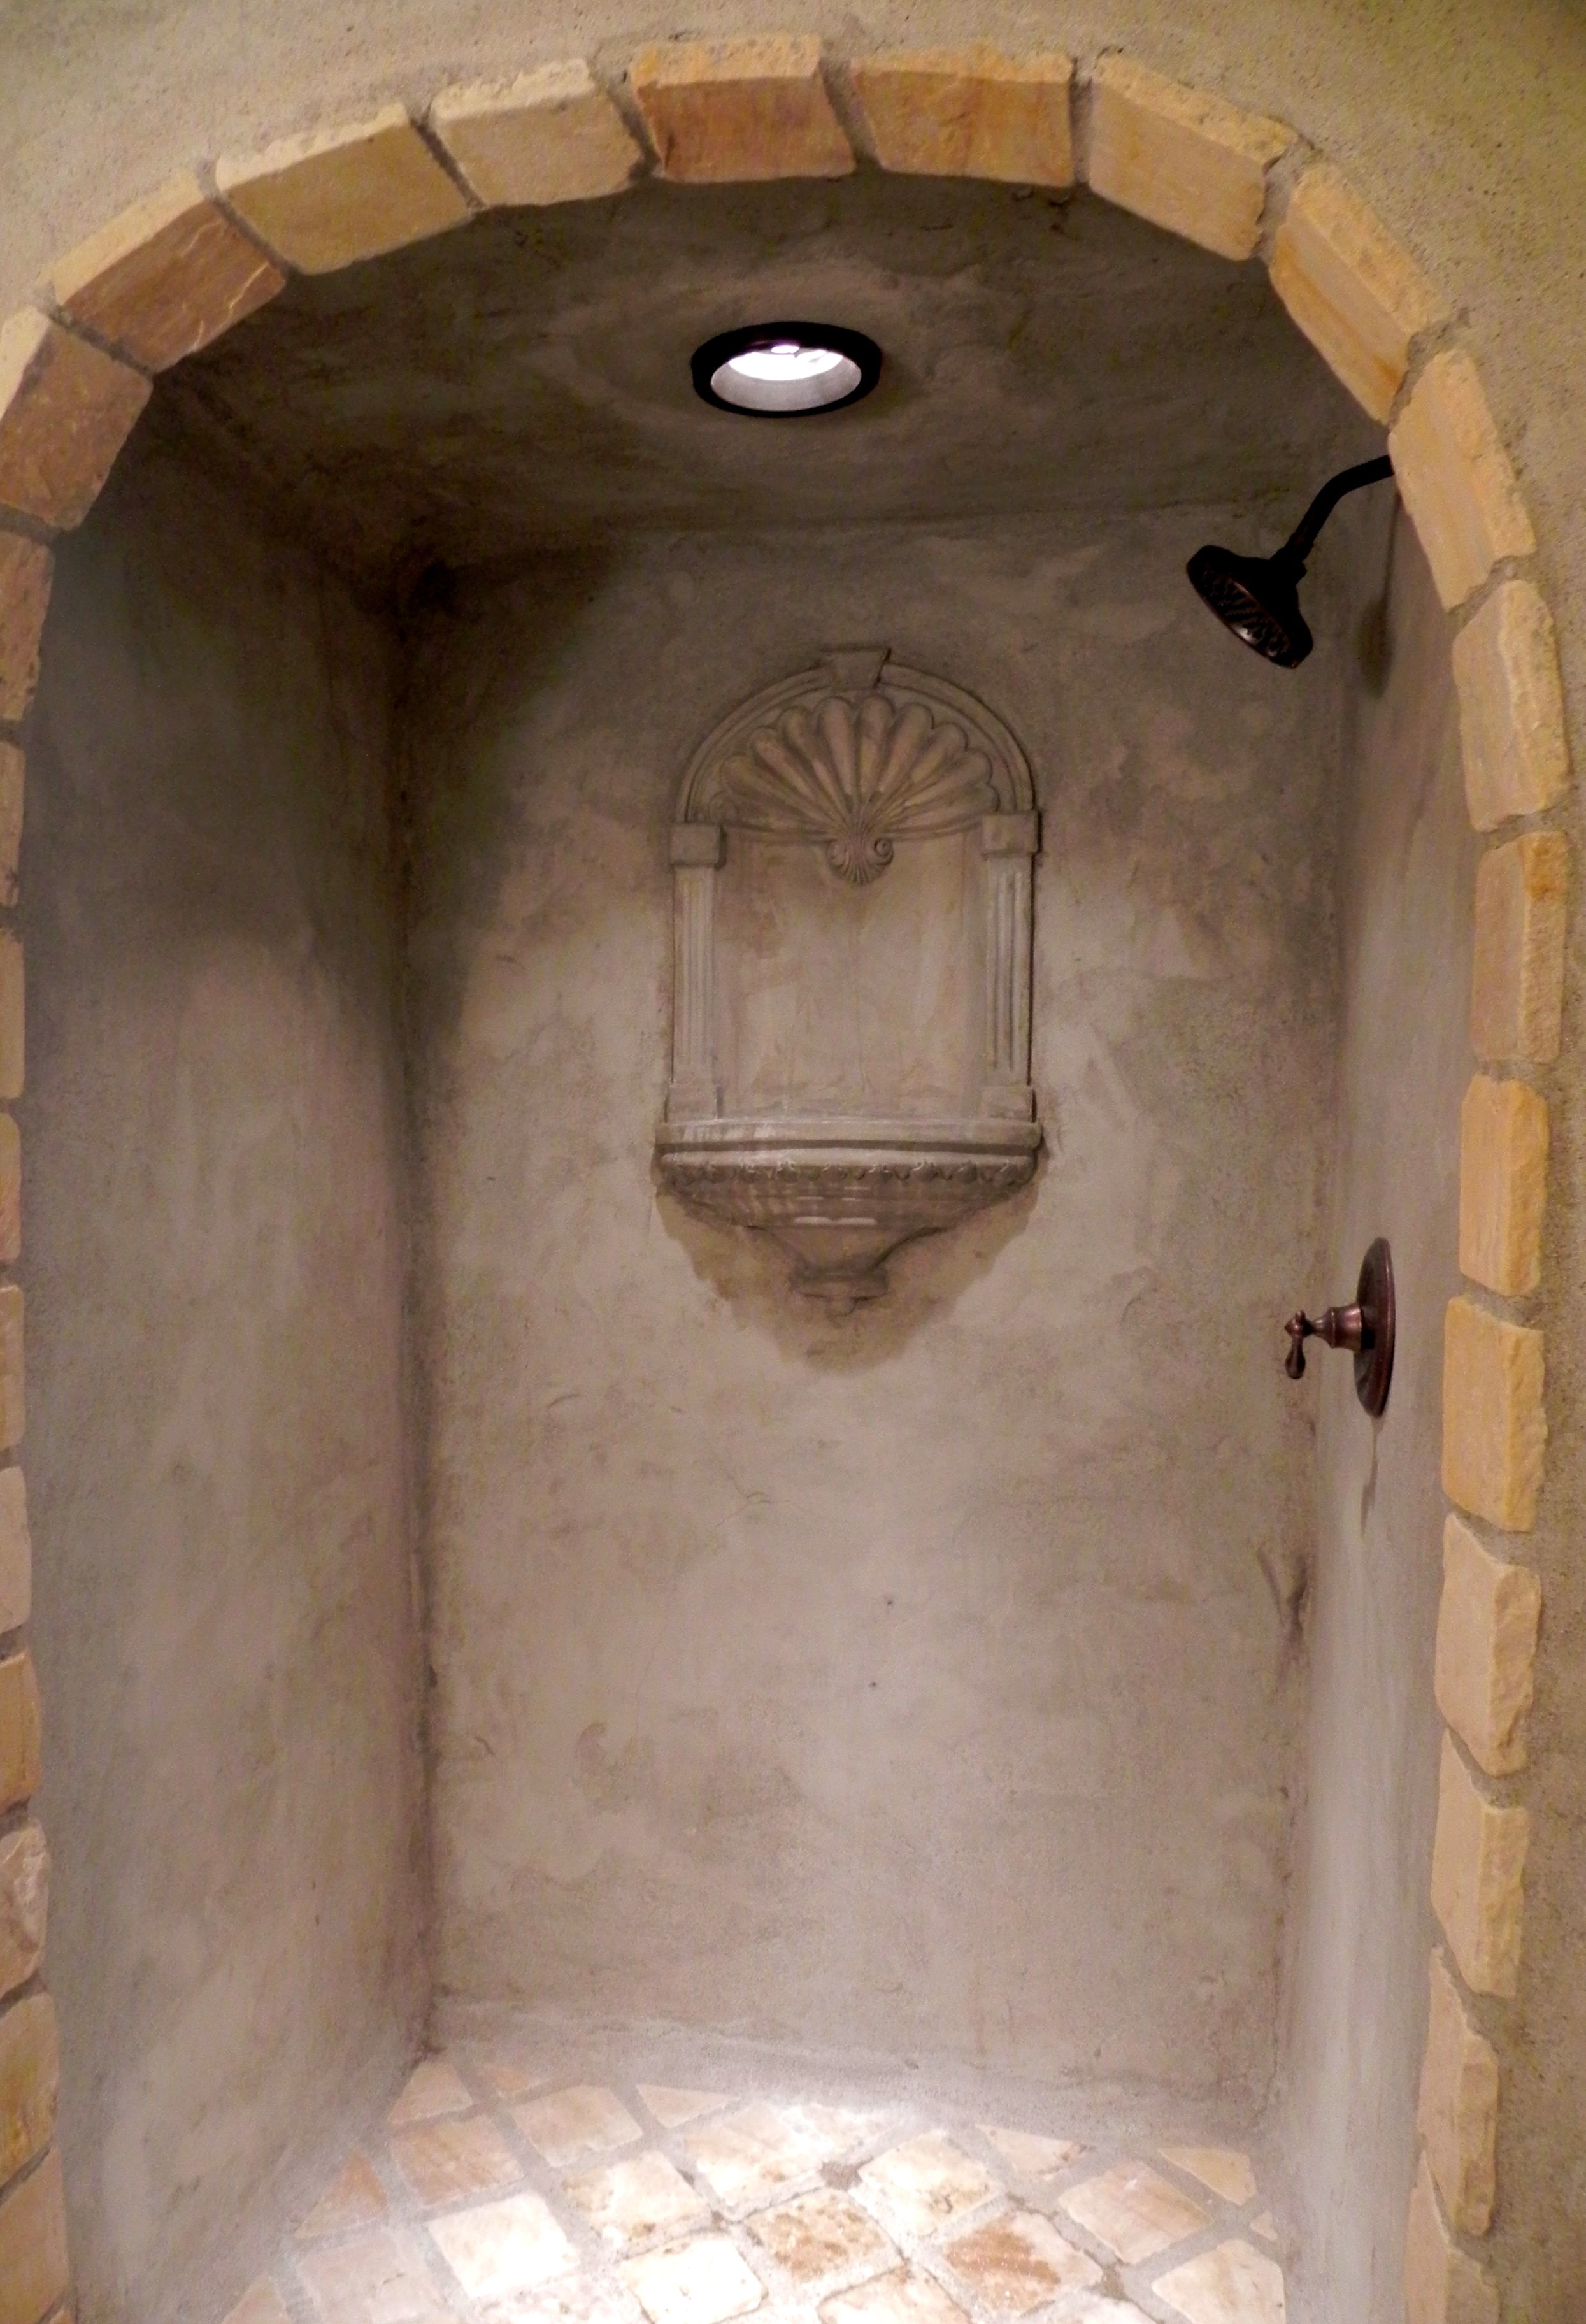 Custom Concrete And Tile Shower European In Design With